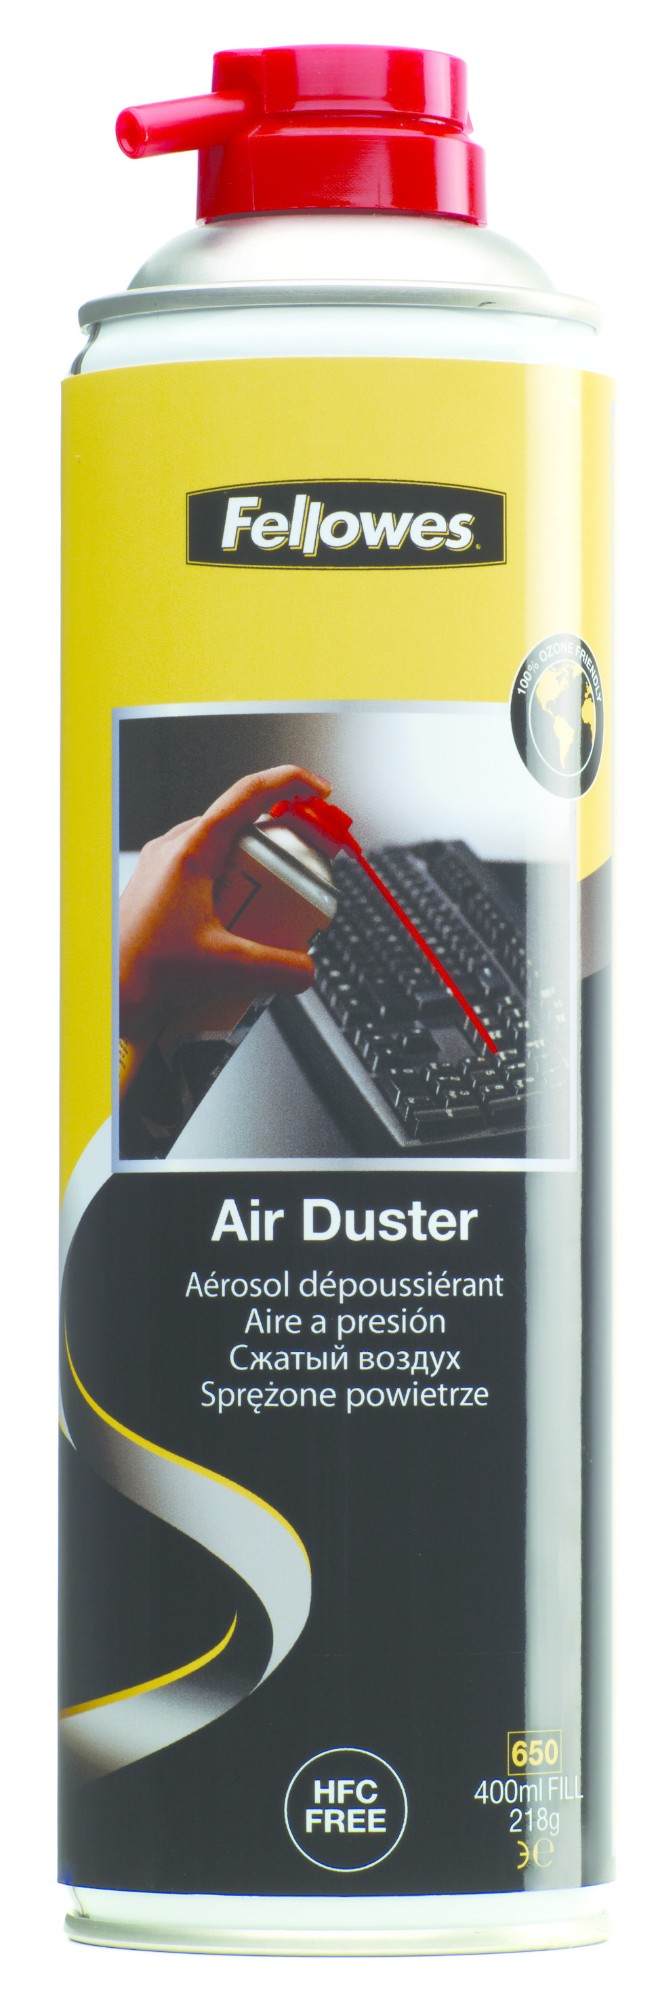 Hfc Free Air Duster 400ml - 9977804